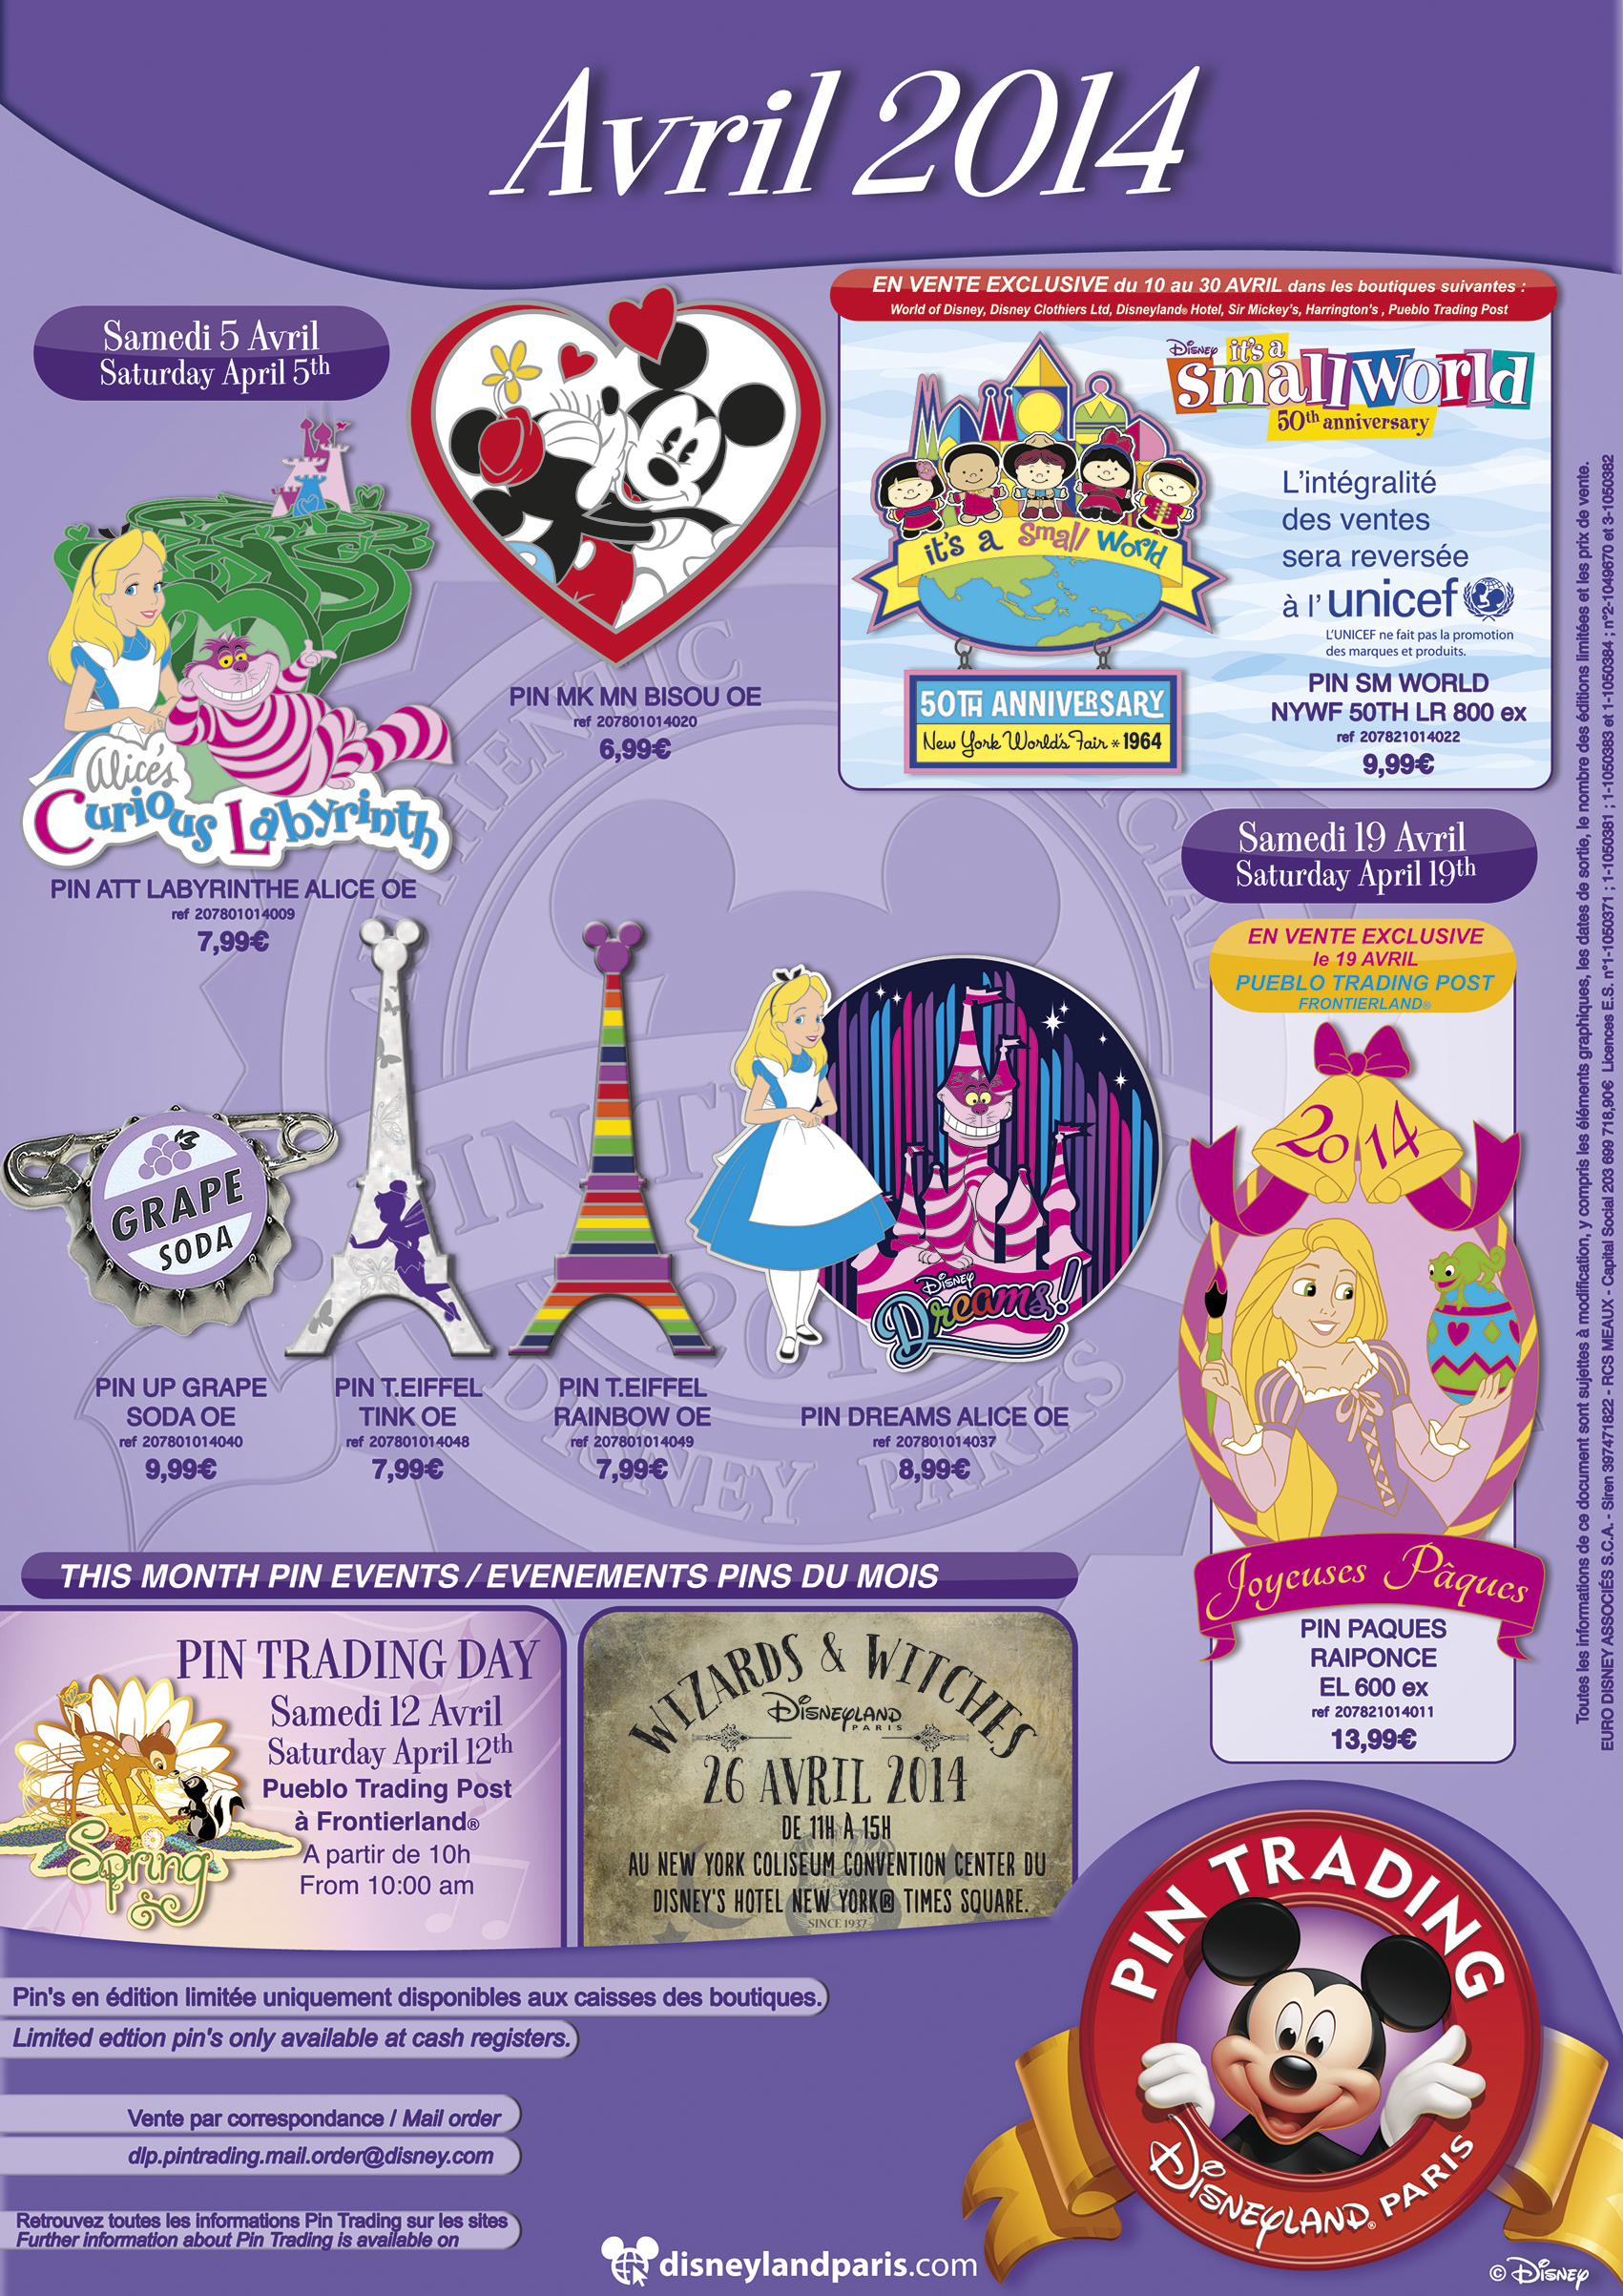 Enjoy our great value Walt Disney World special offers! Find out about our latest deals and stay updated with our special offers, or call our Disney Experts on * for more details.